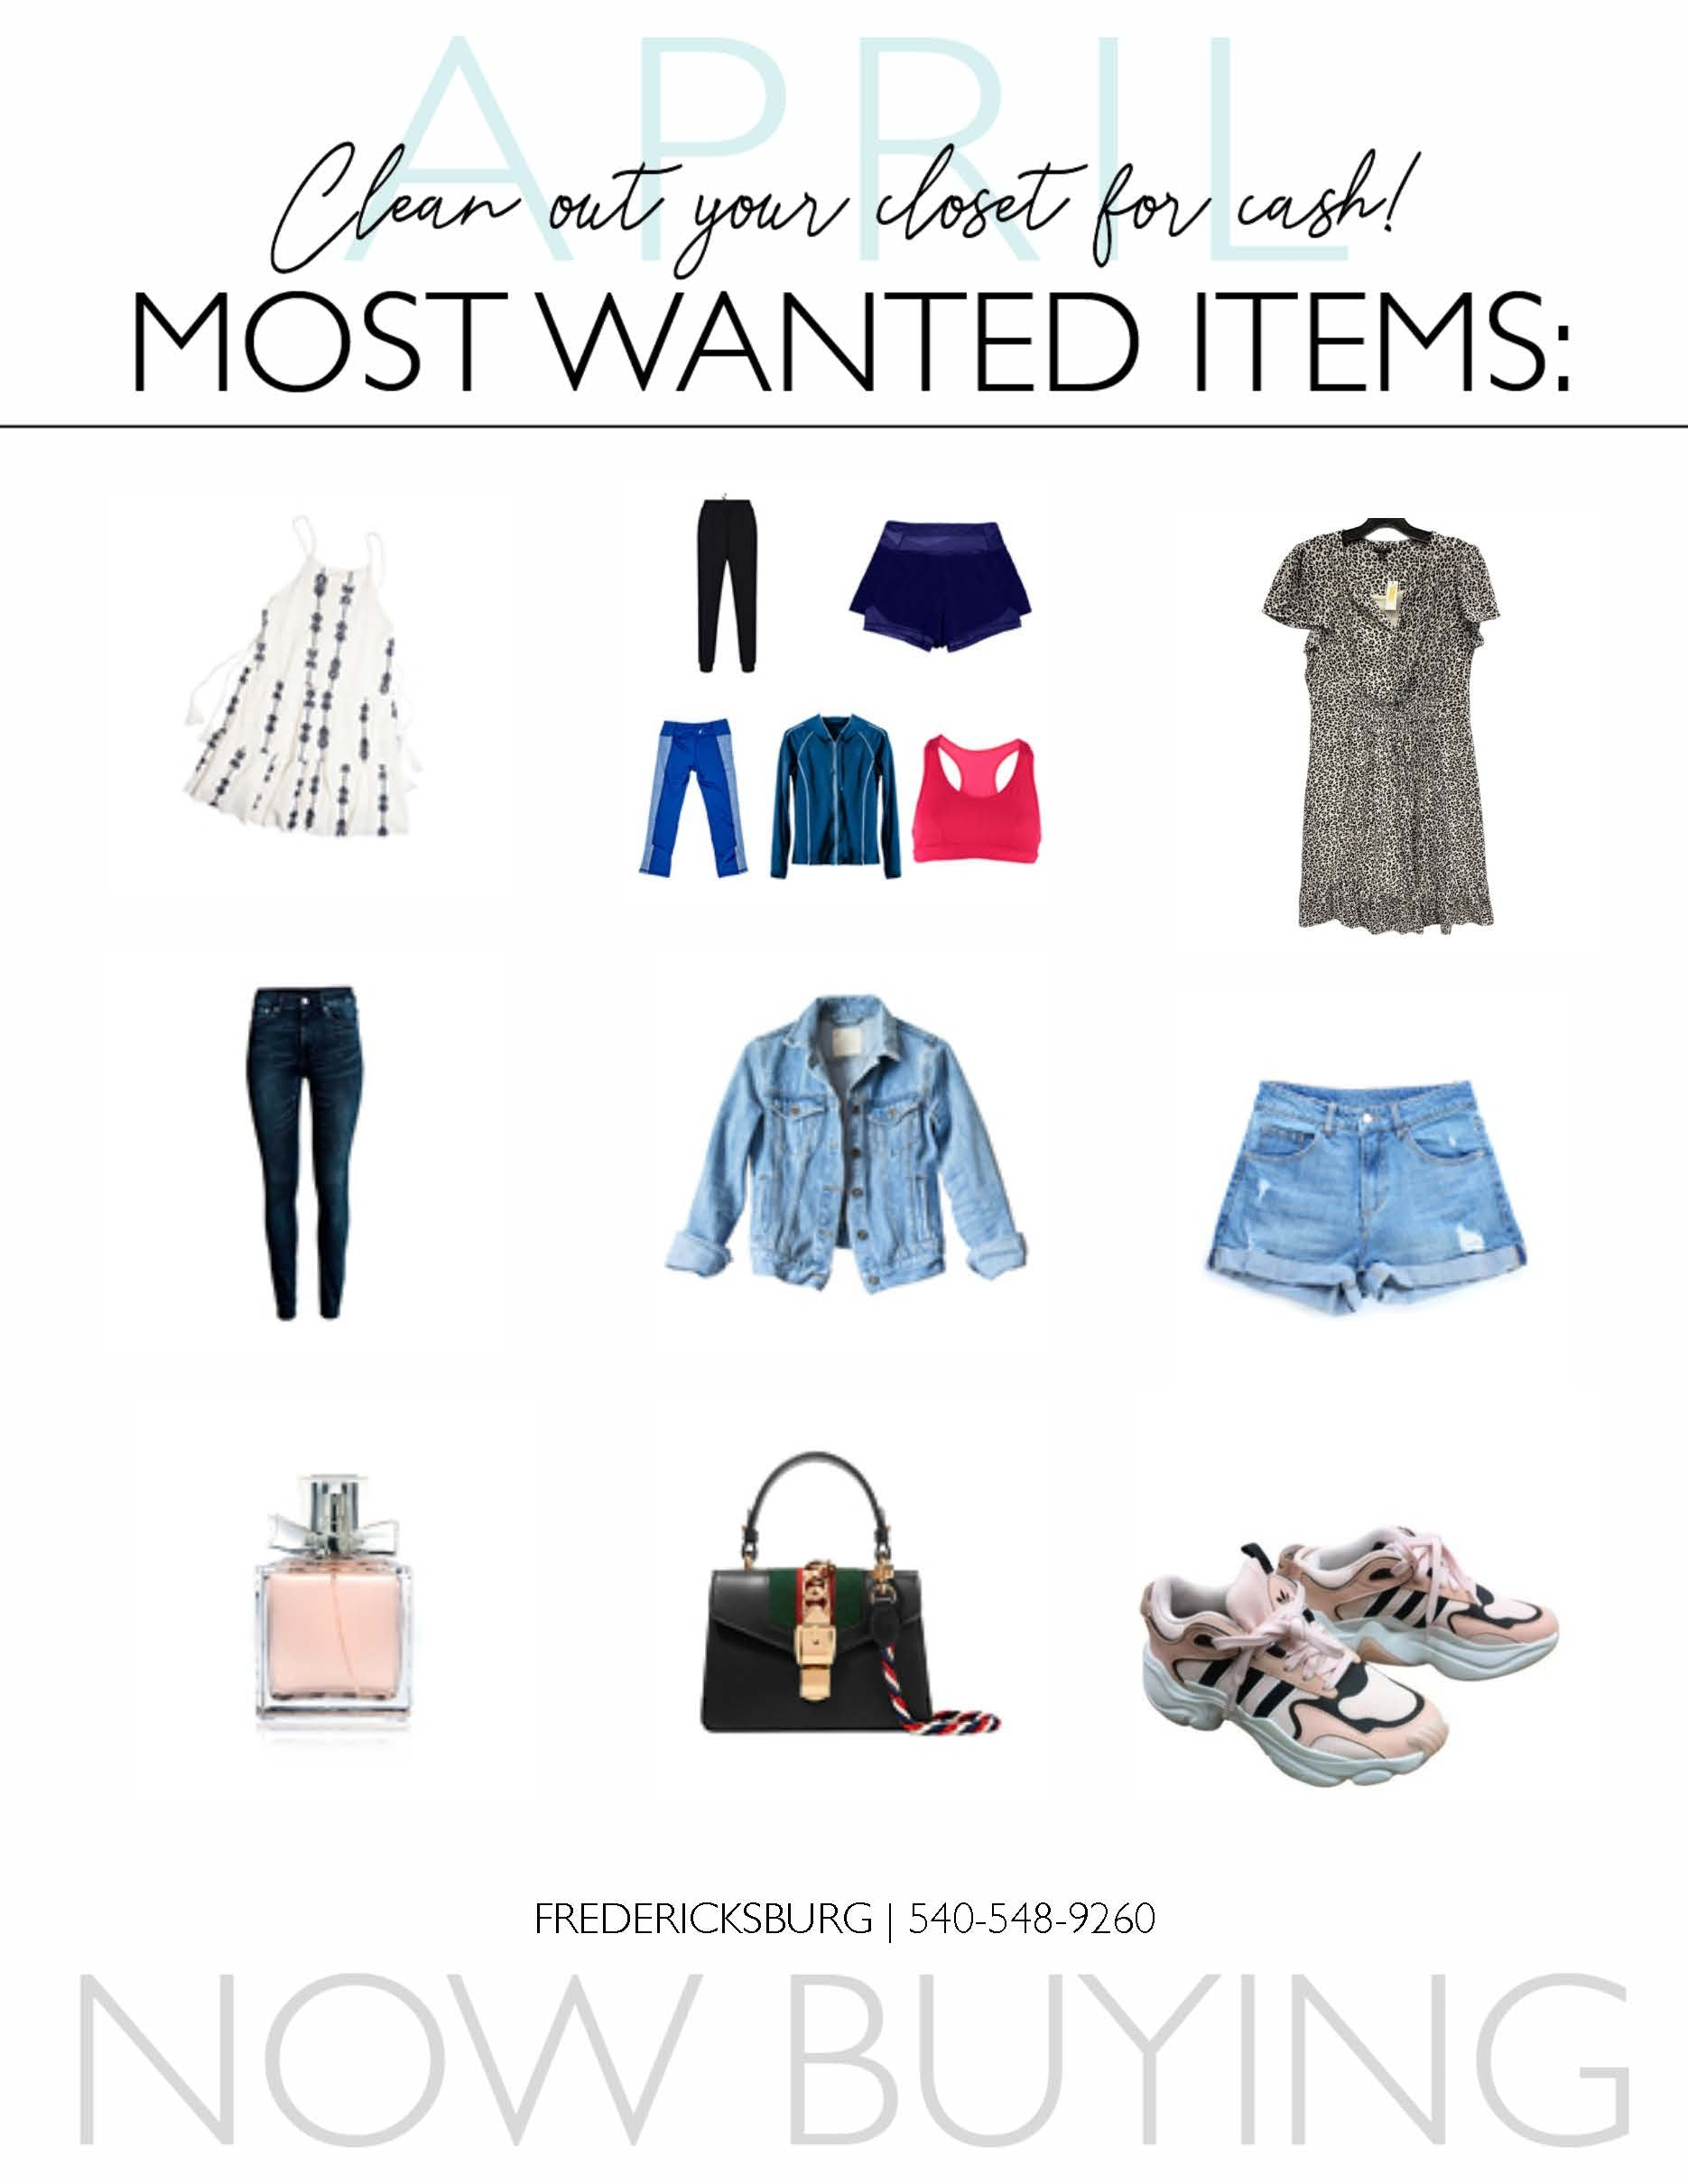 Clothes Mentor April most wanted